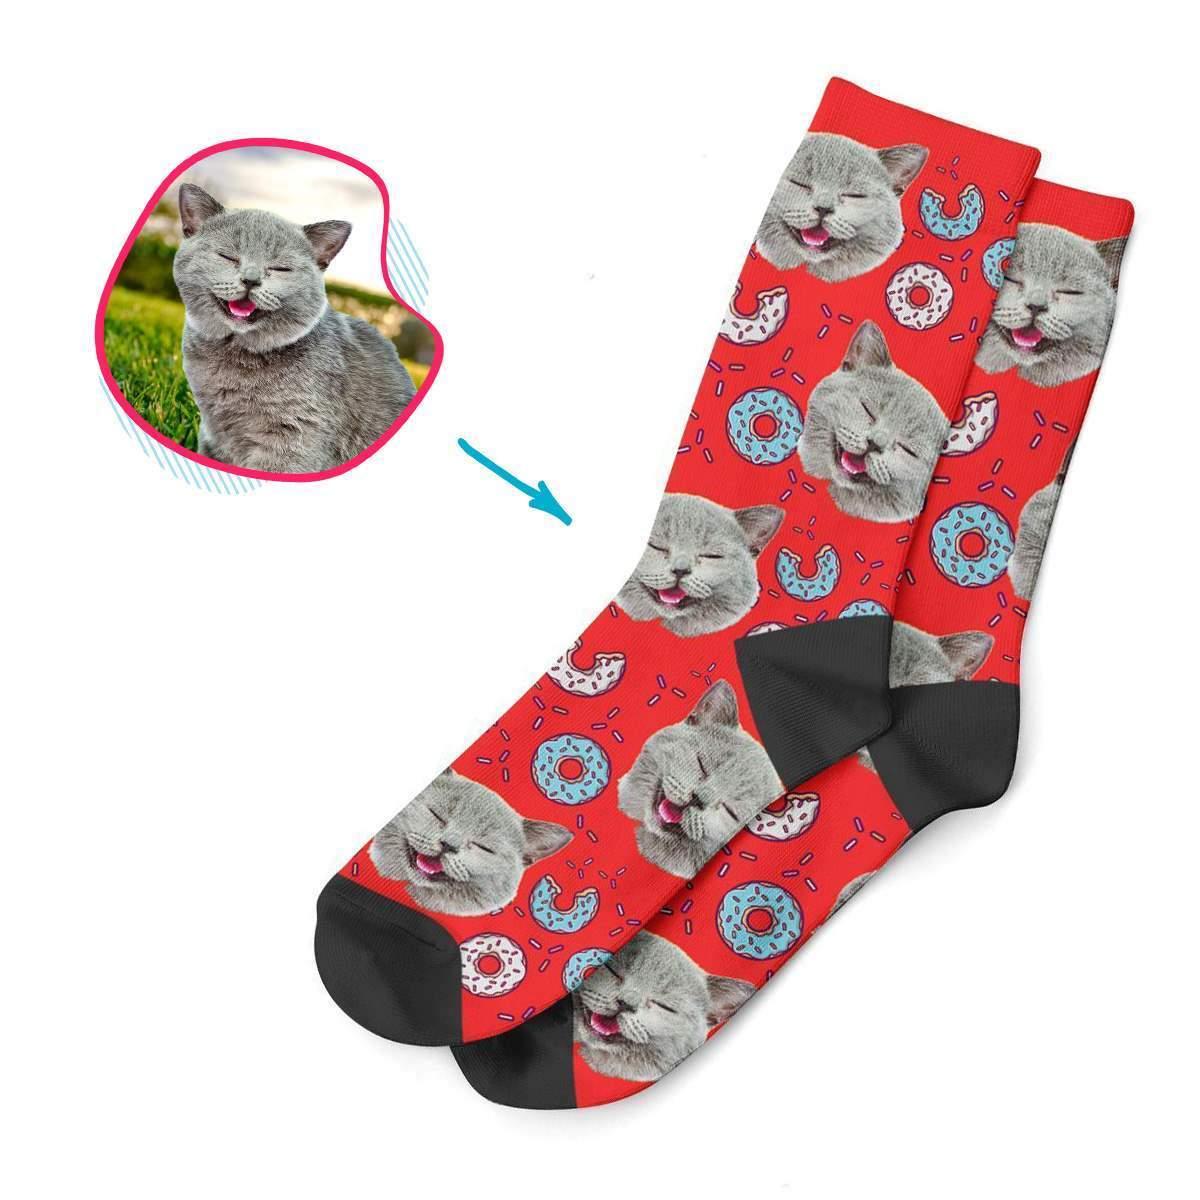 red Donuts socks personalized with photo of face printed on them